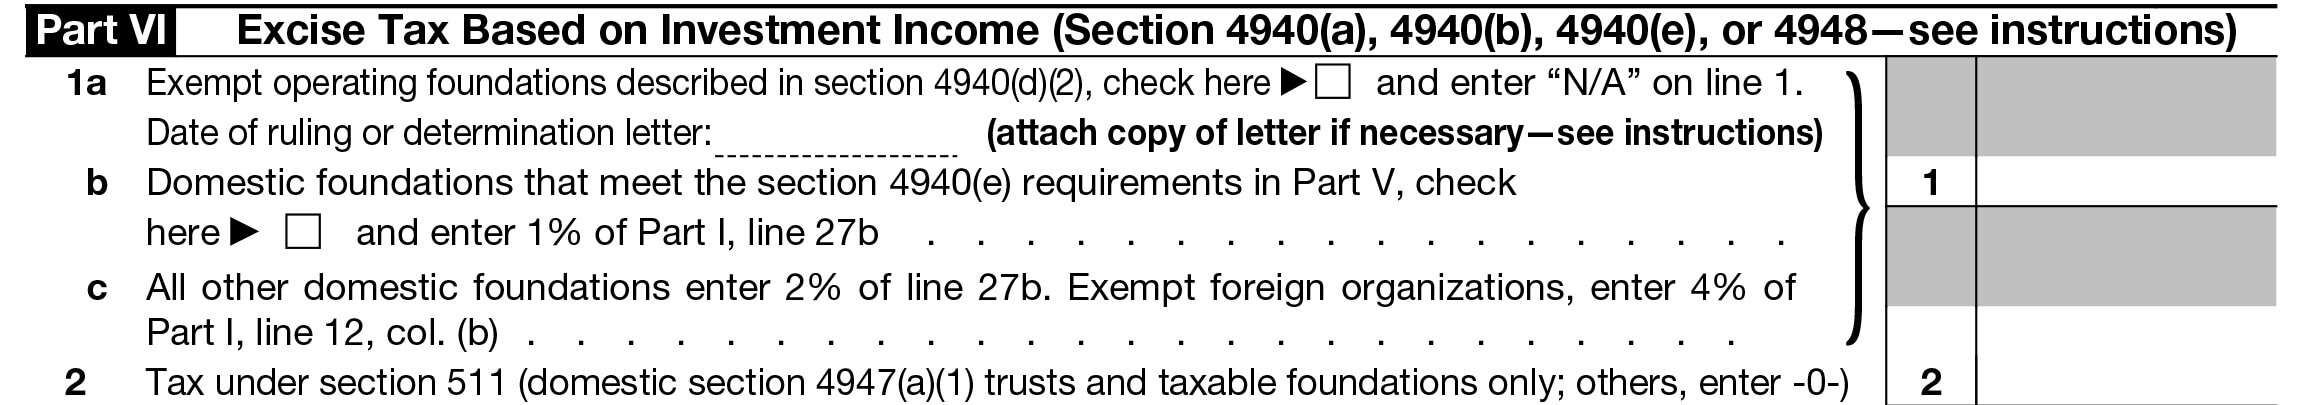 Part VI -  Excise Tax Based on Investment Income (Section 4940(a), 4940(b), 4940(e), or 4948—see instructions)